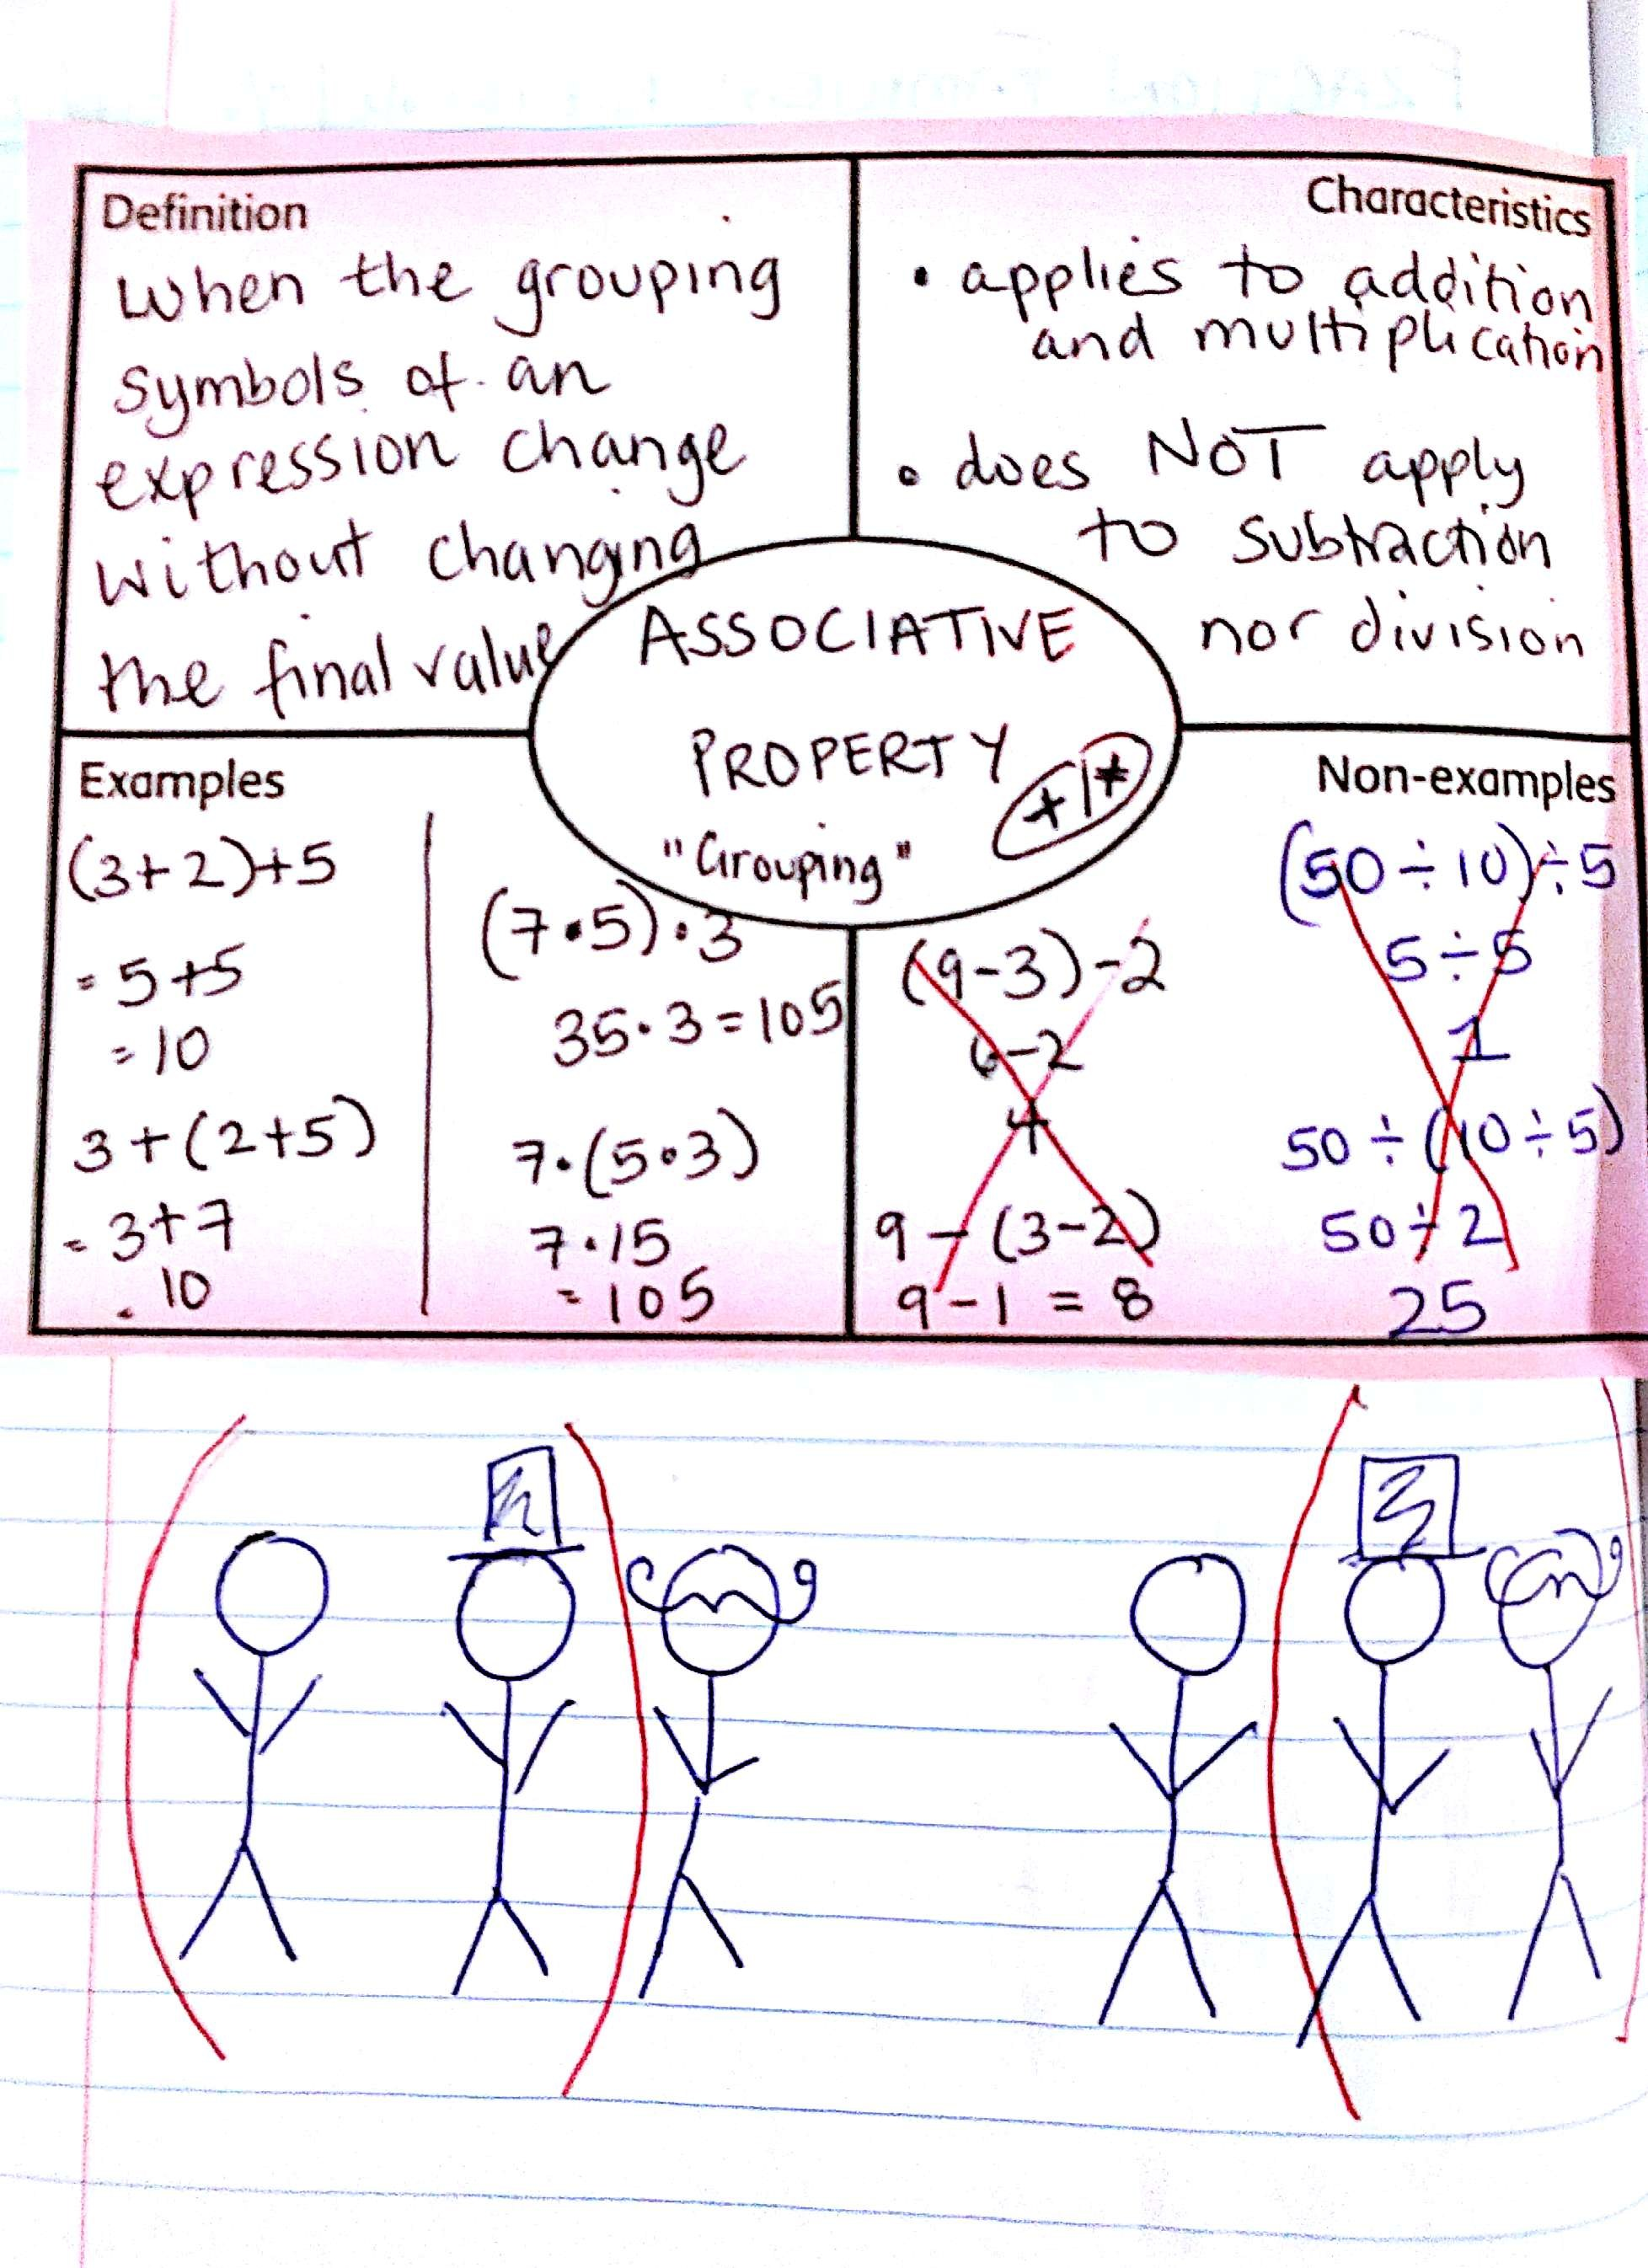 Murchison middle school properties of operations notes1g biocorpaavc Choice Image